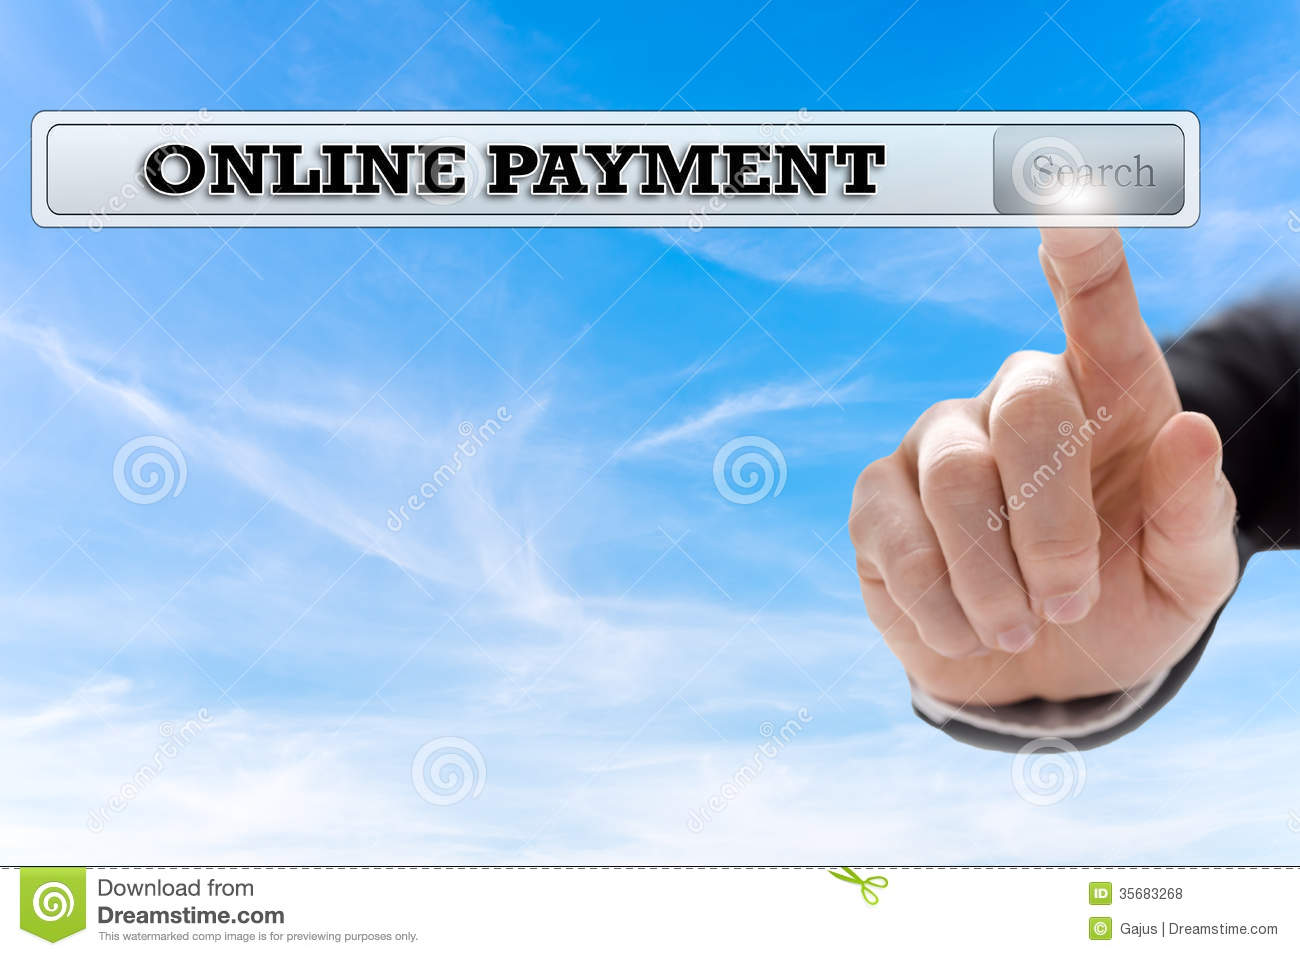 Online Payment Royalty Free Stock Photos - Image: 35683268